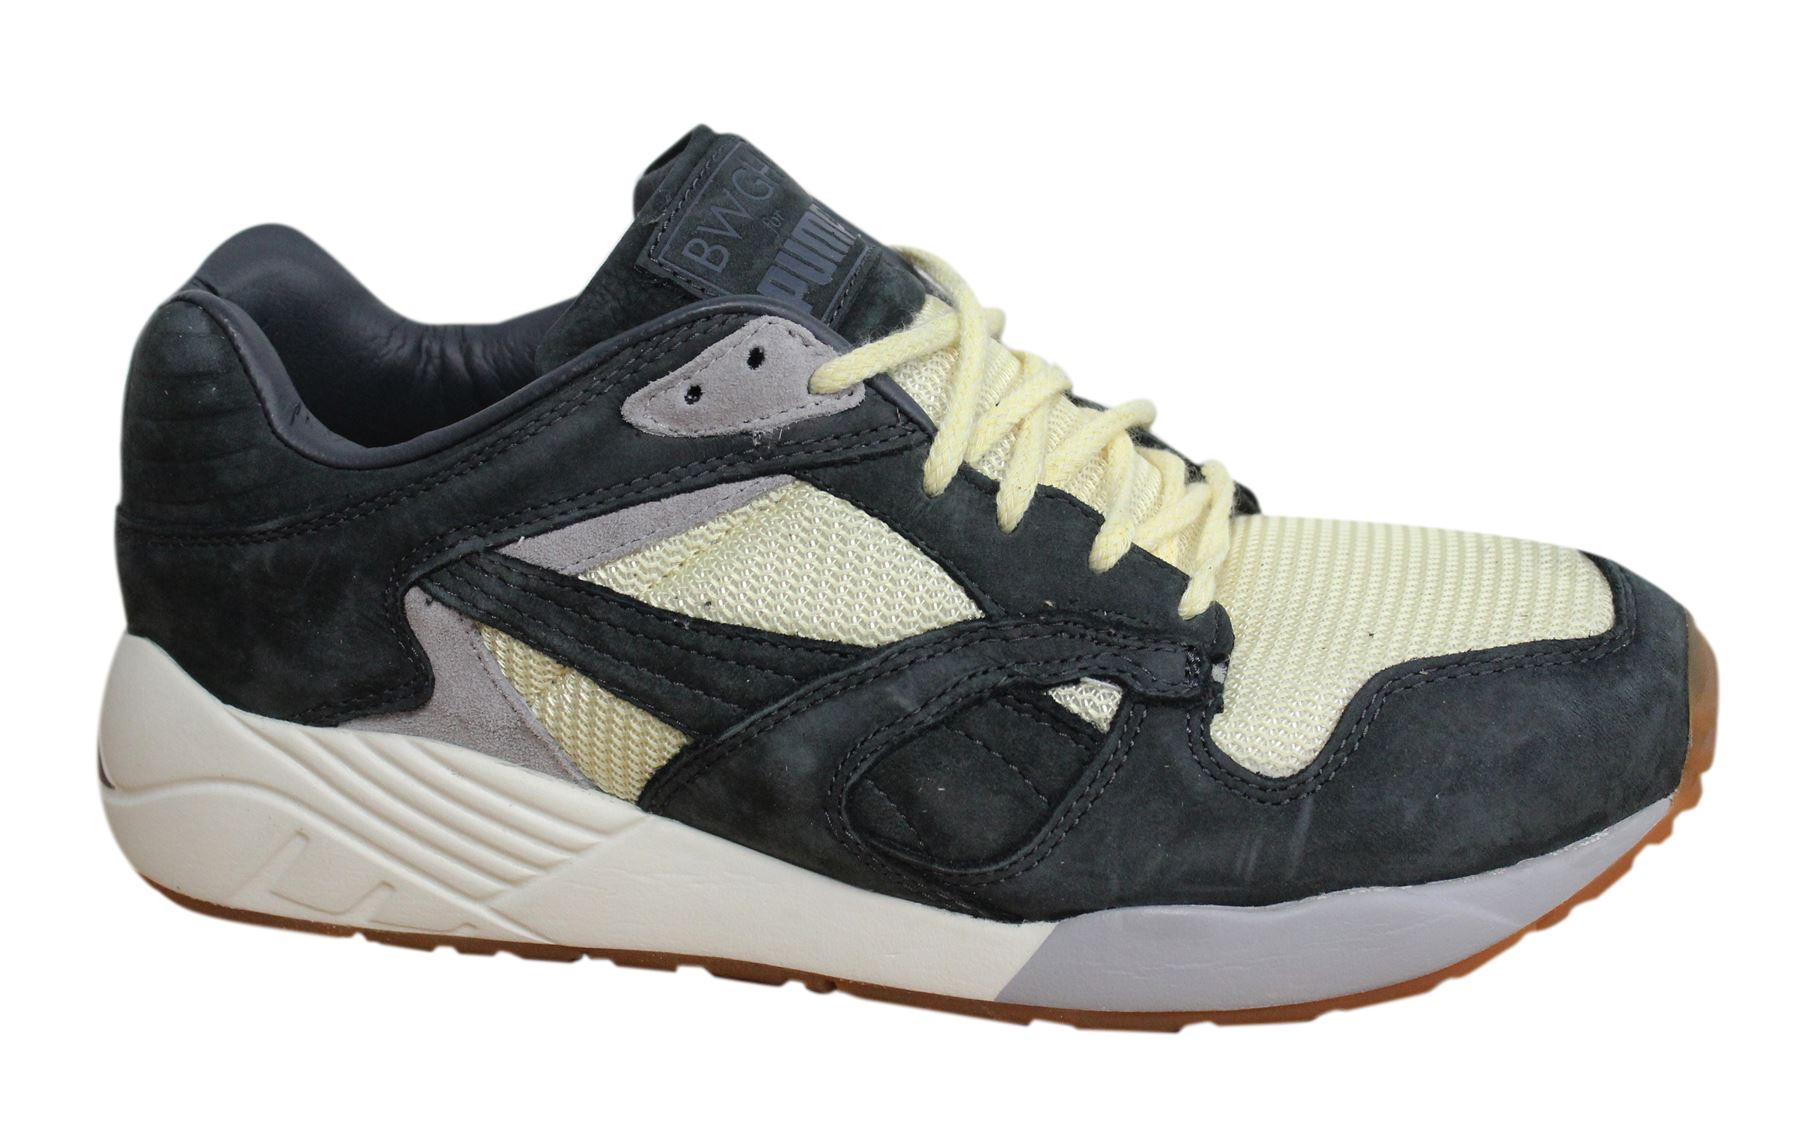 958eeb7ae0 Puma XS-850 x BWGH Lace Up Dark Shadow Leather Mens Trainers 357032 01 D1